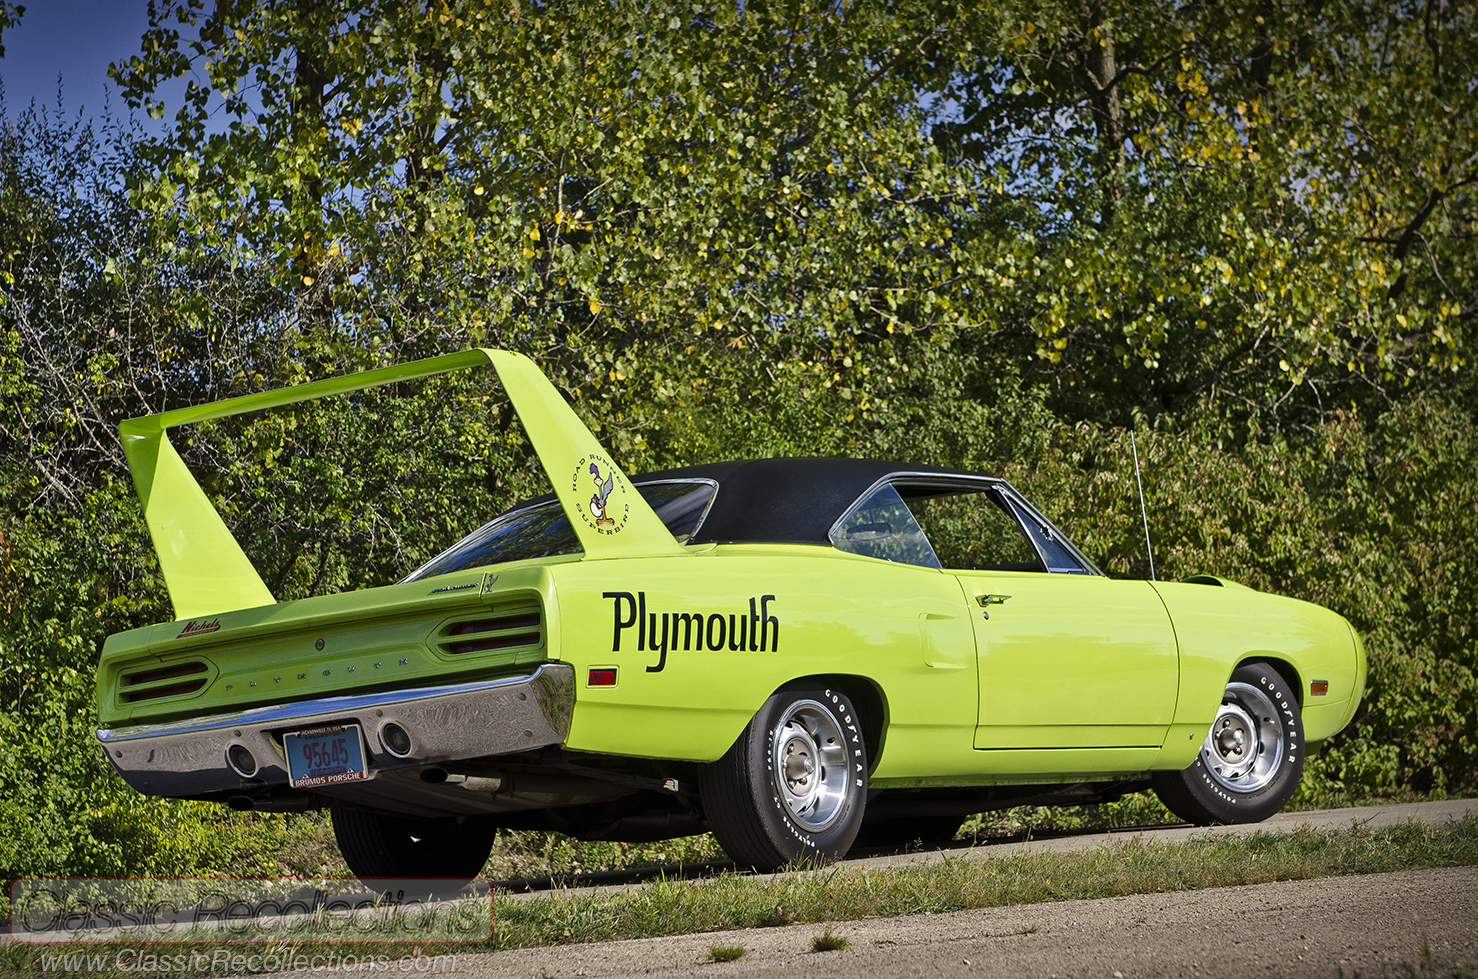 FEATURE: 1970 Plymouth Superbird – Classic Recollections